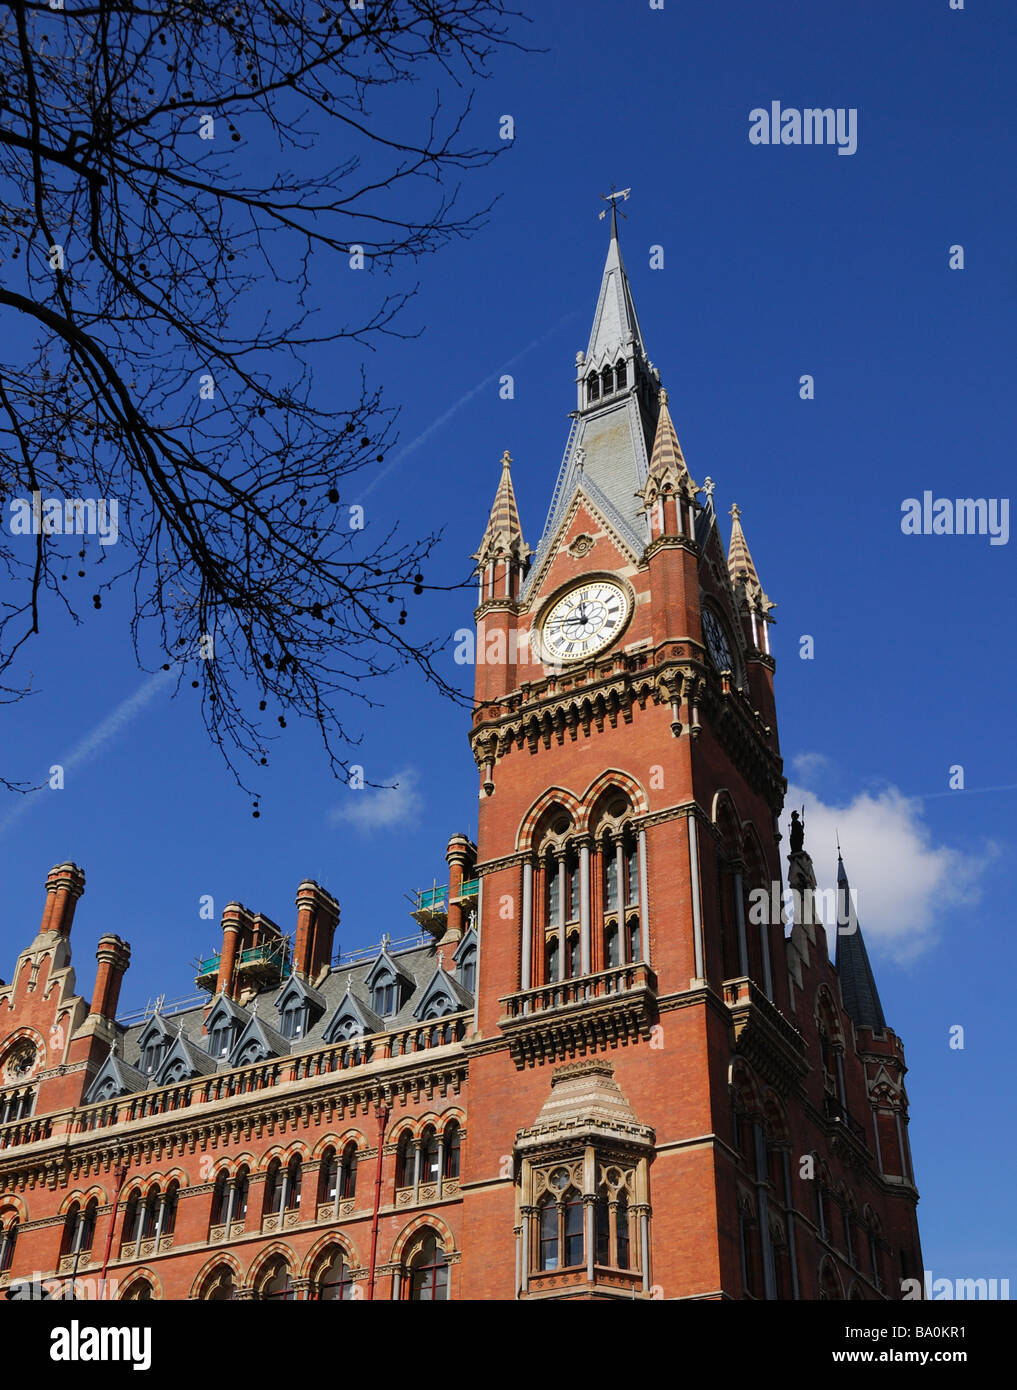 St.Pancras Station clock tower - Stock Image